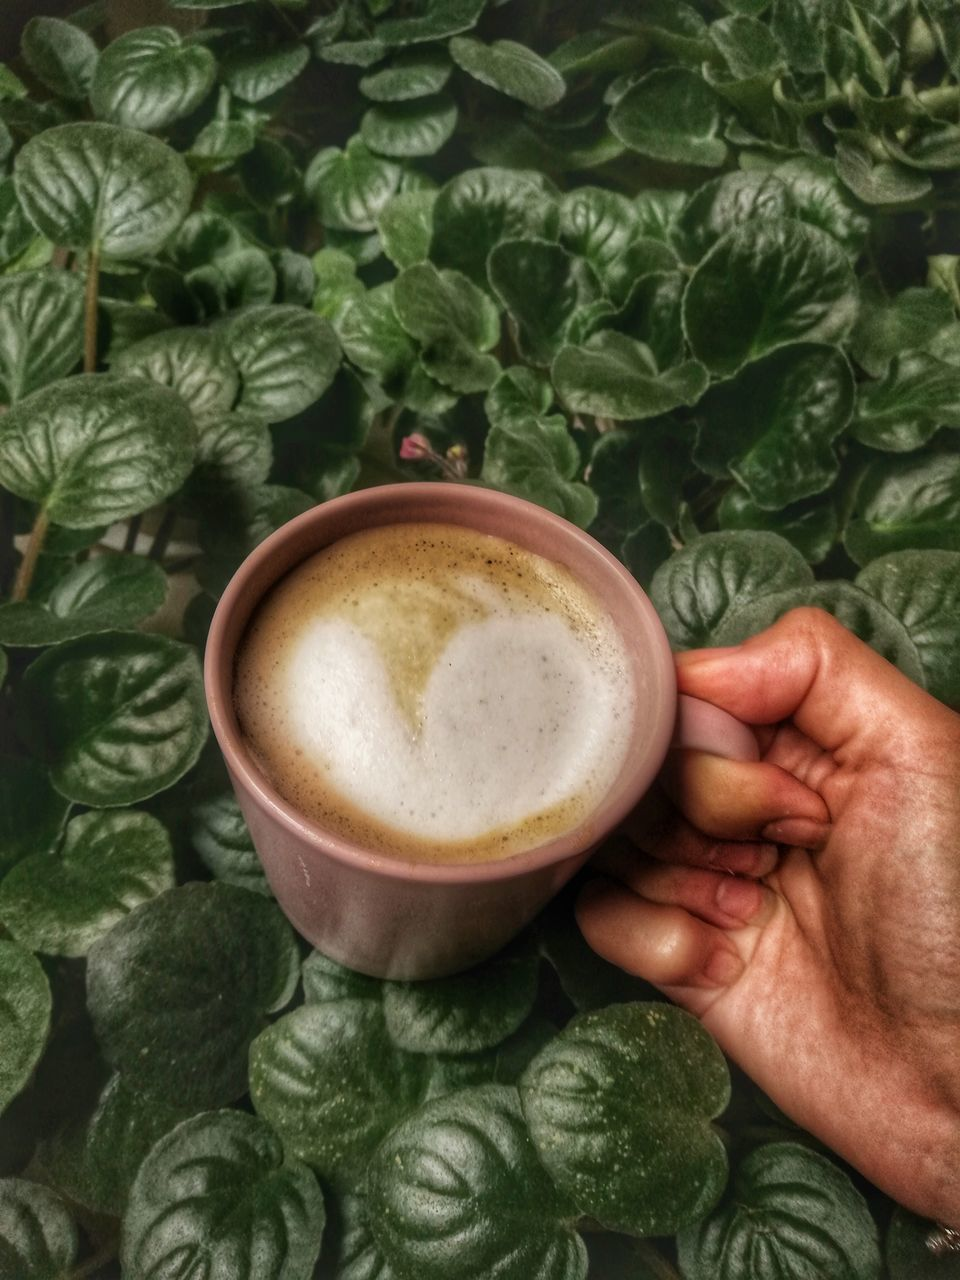 CROPPED IMAGE OF HAND HOLDING COFFEE CUP WITH SPOON